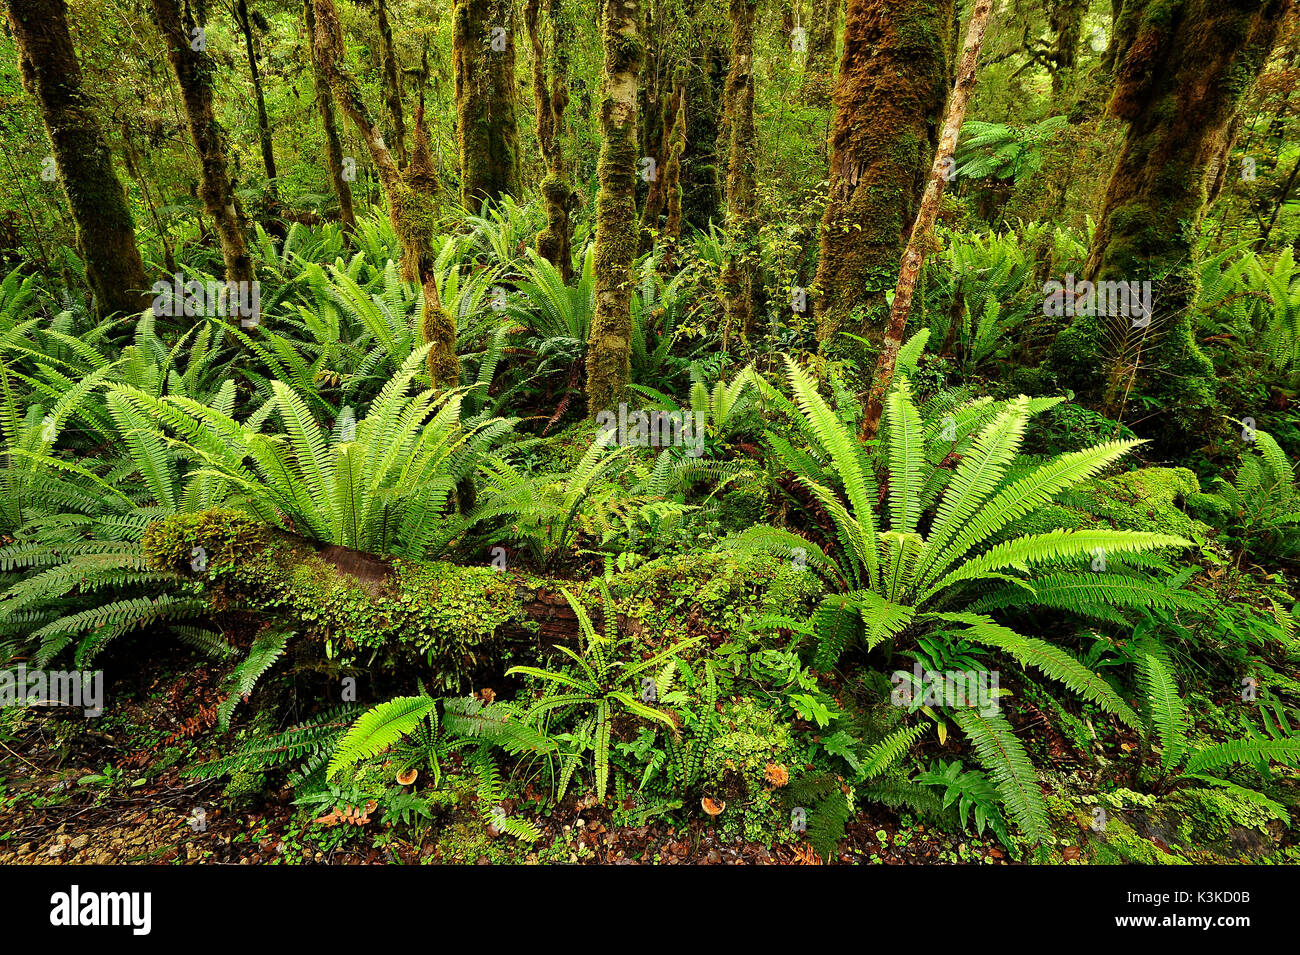 Closer mossy wood with fern in the New Zealand jungle. - Stock Image